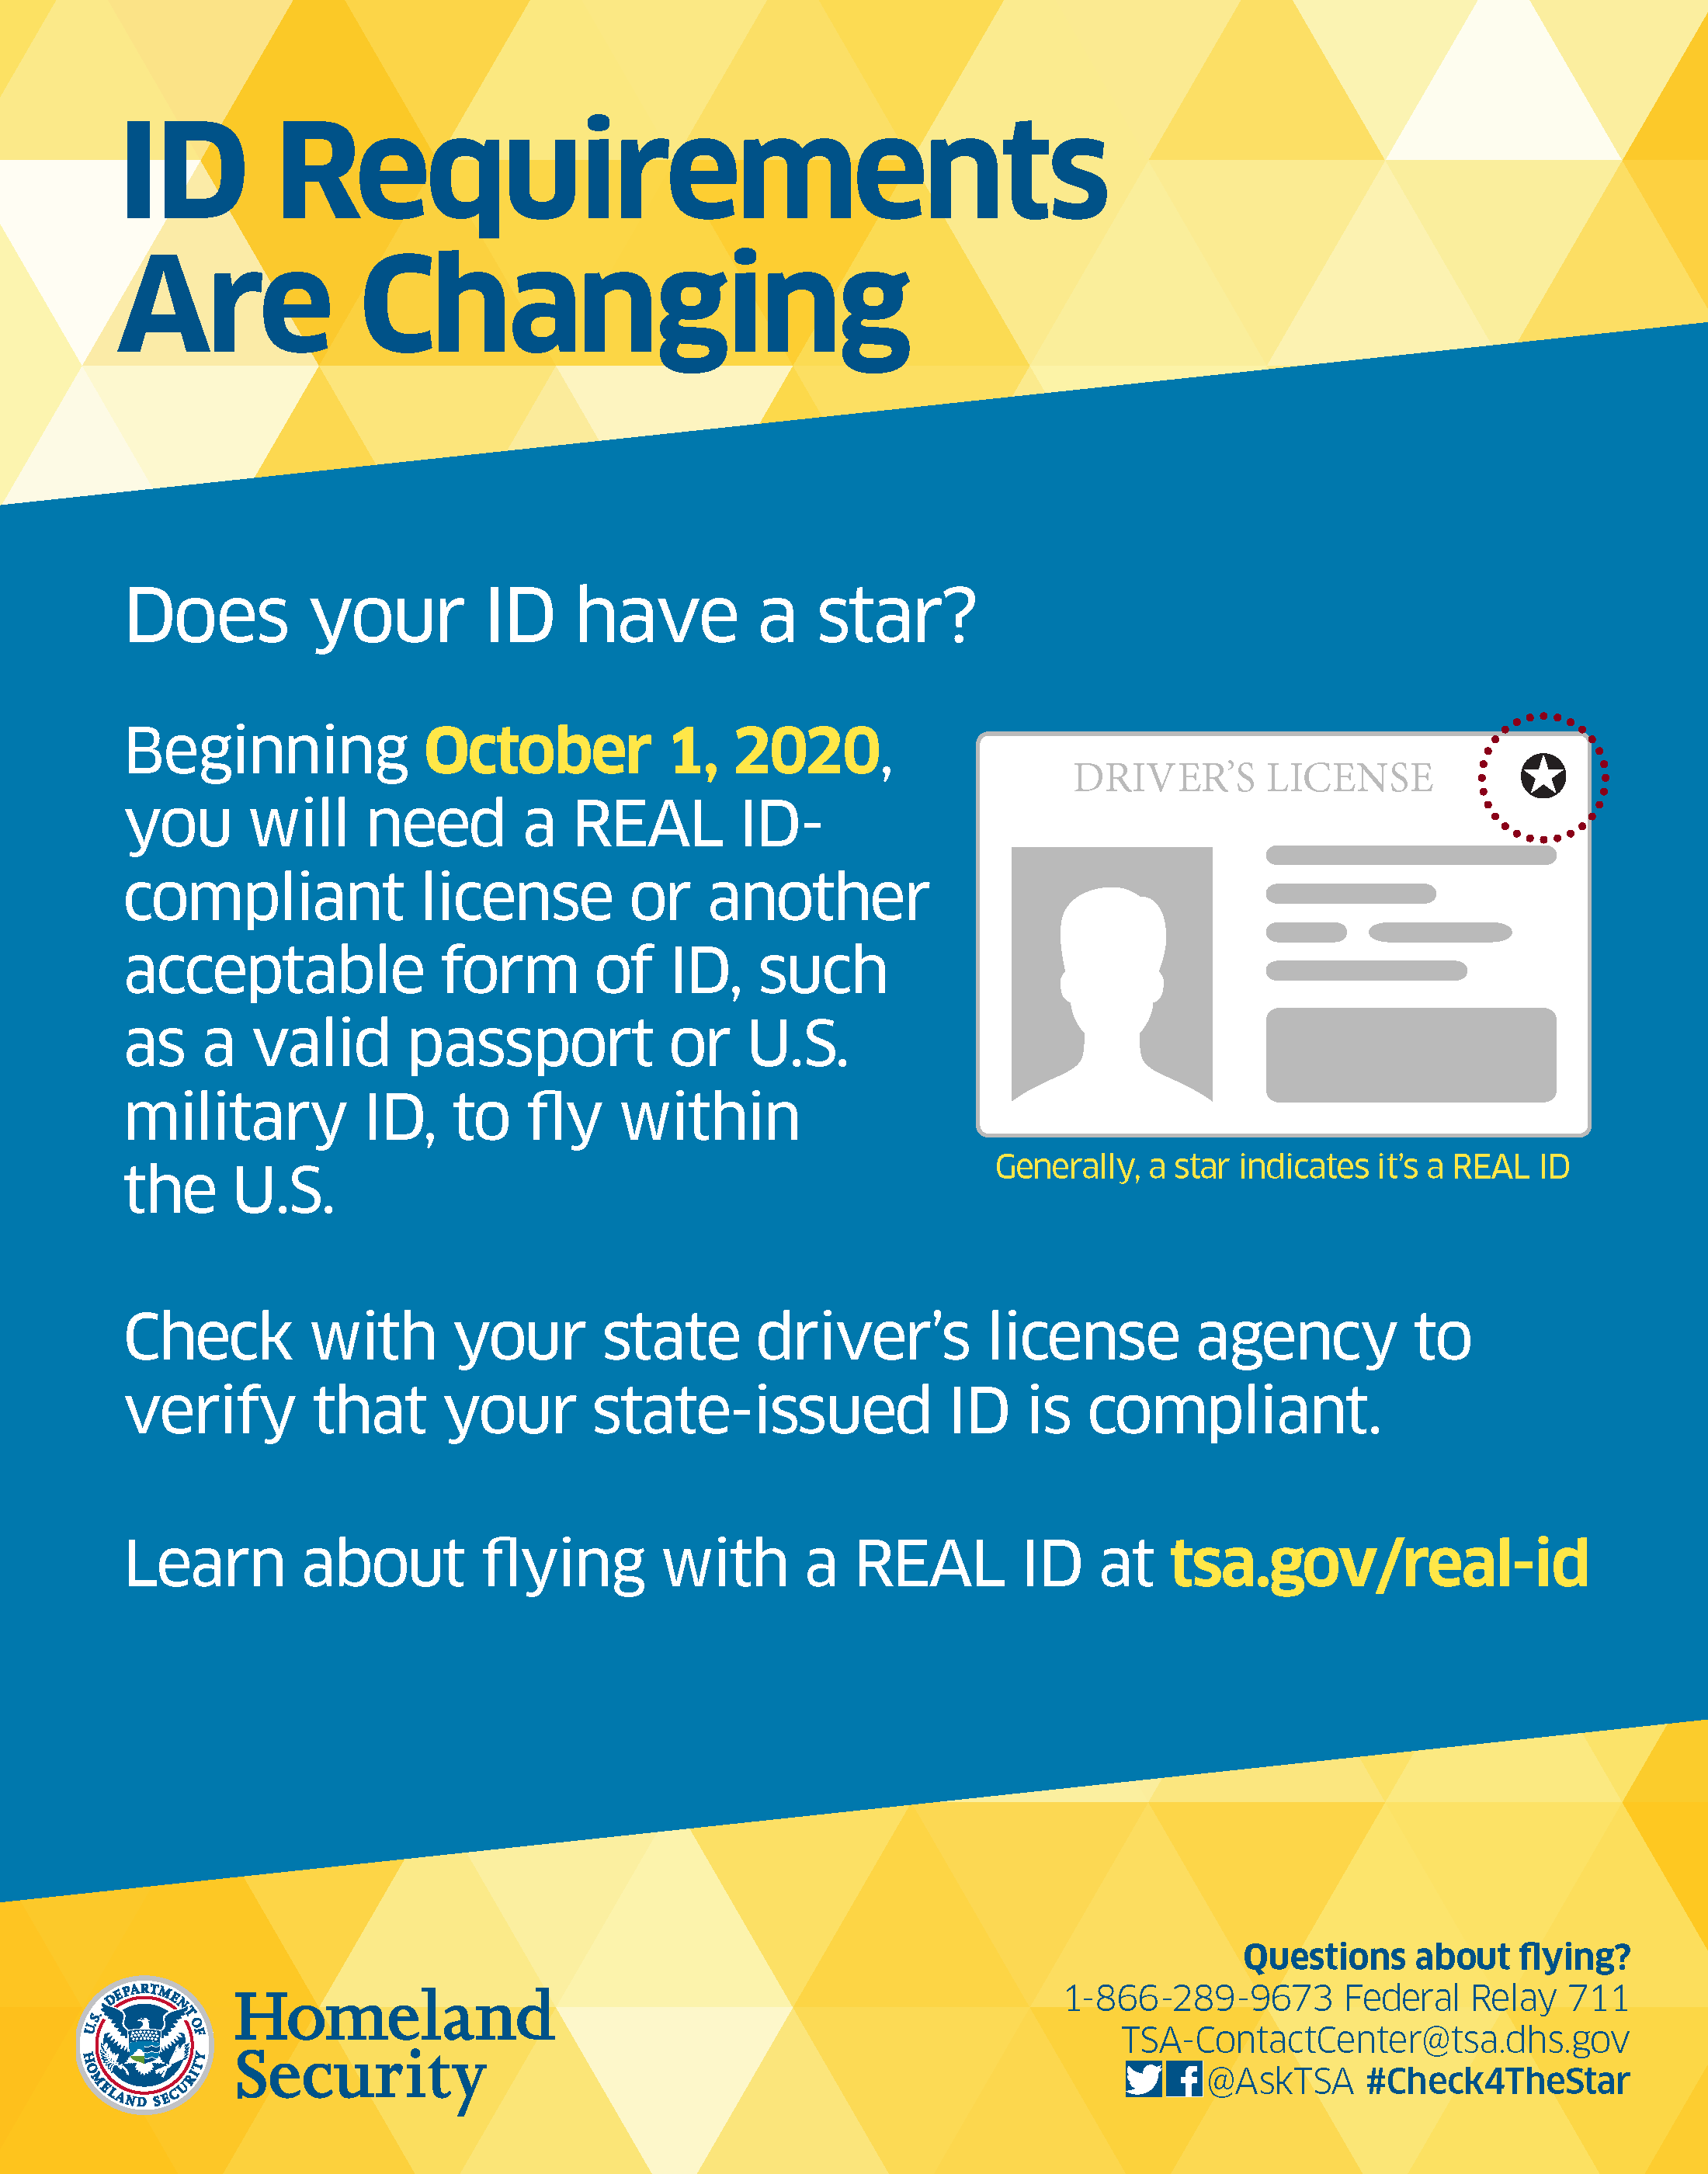 ID Requirements are Changing. Does your ID have a star? REAL ID